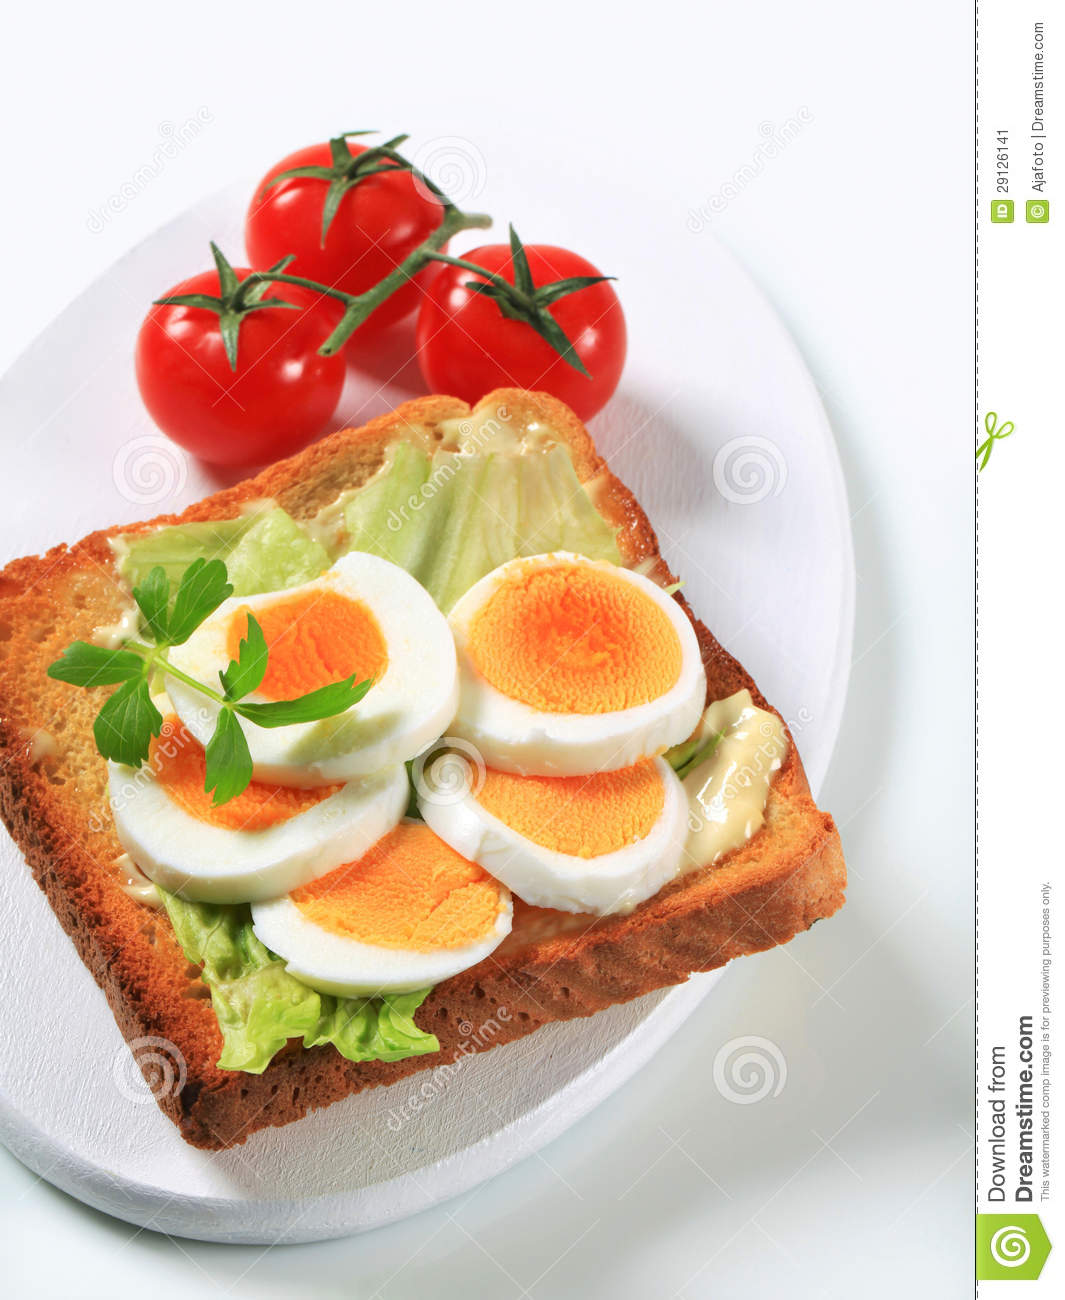 Open Faced Egg Sandwich Stock Image - Image: 29126141